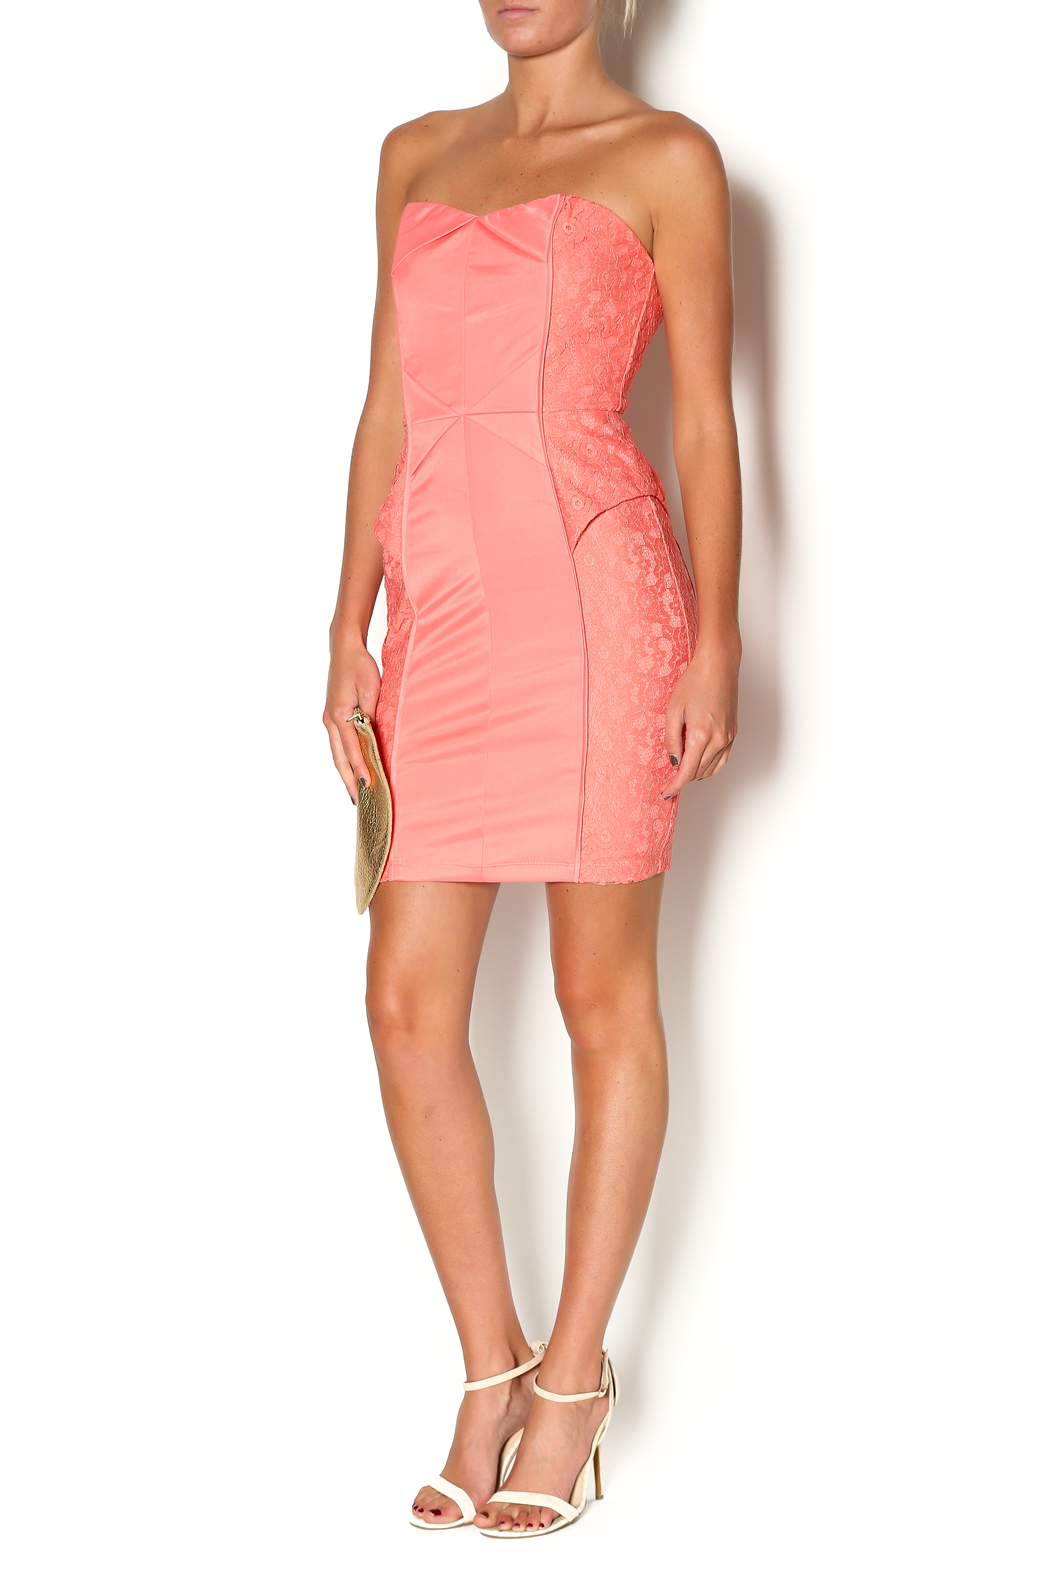 Abby & Taylor Strapless Coral Lace Dress - Front Full Image